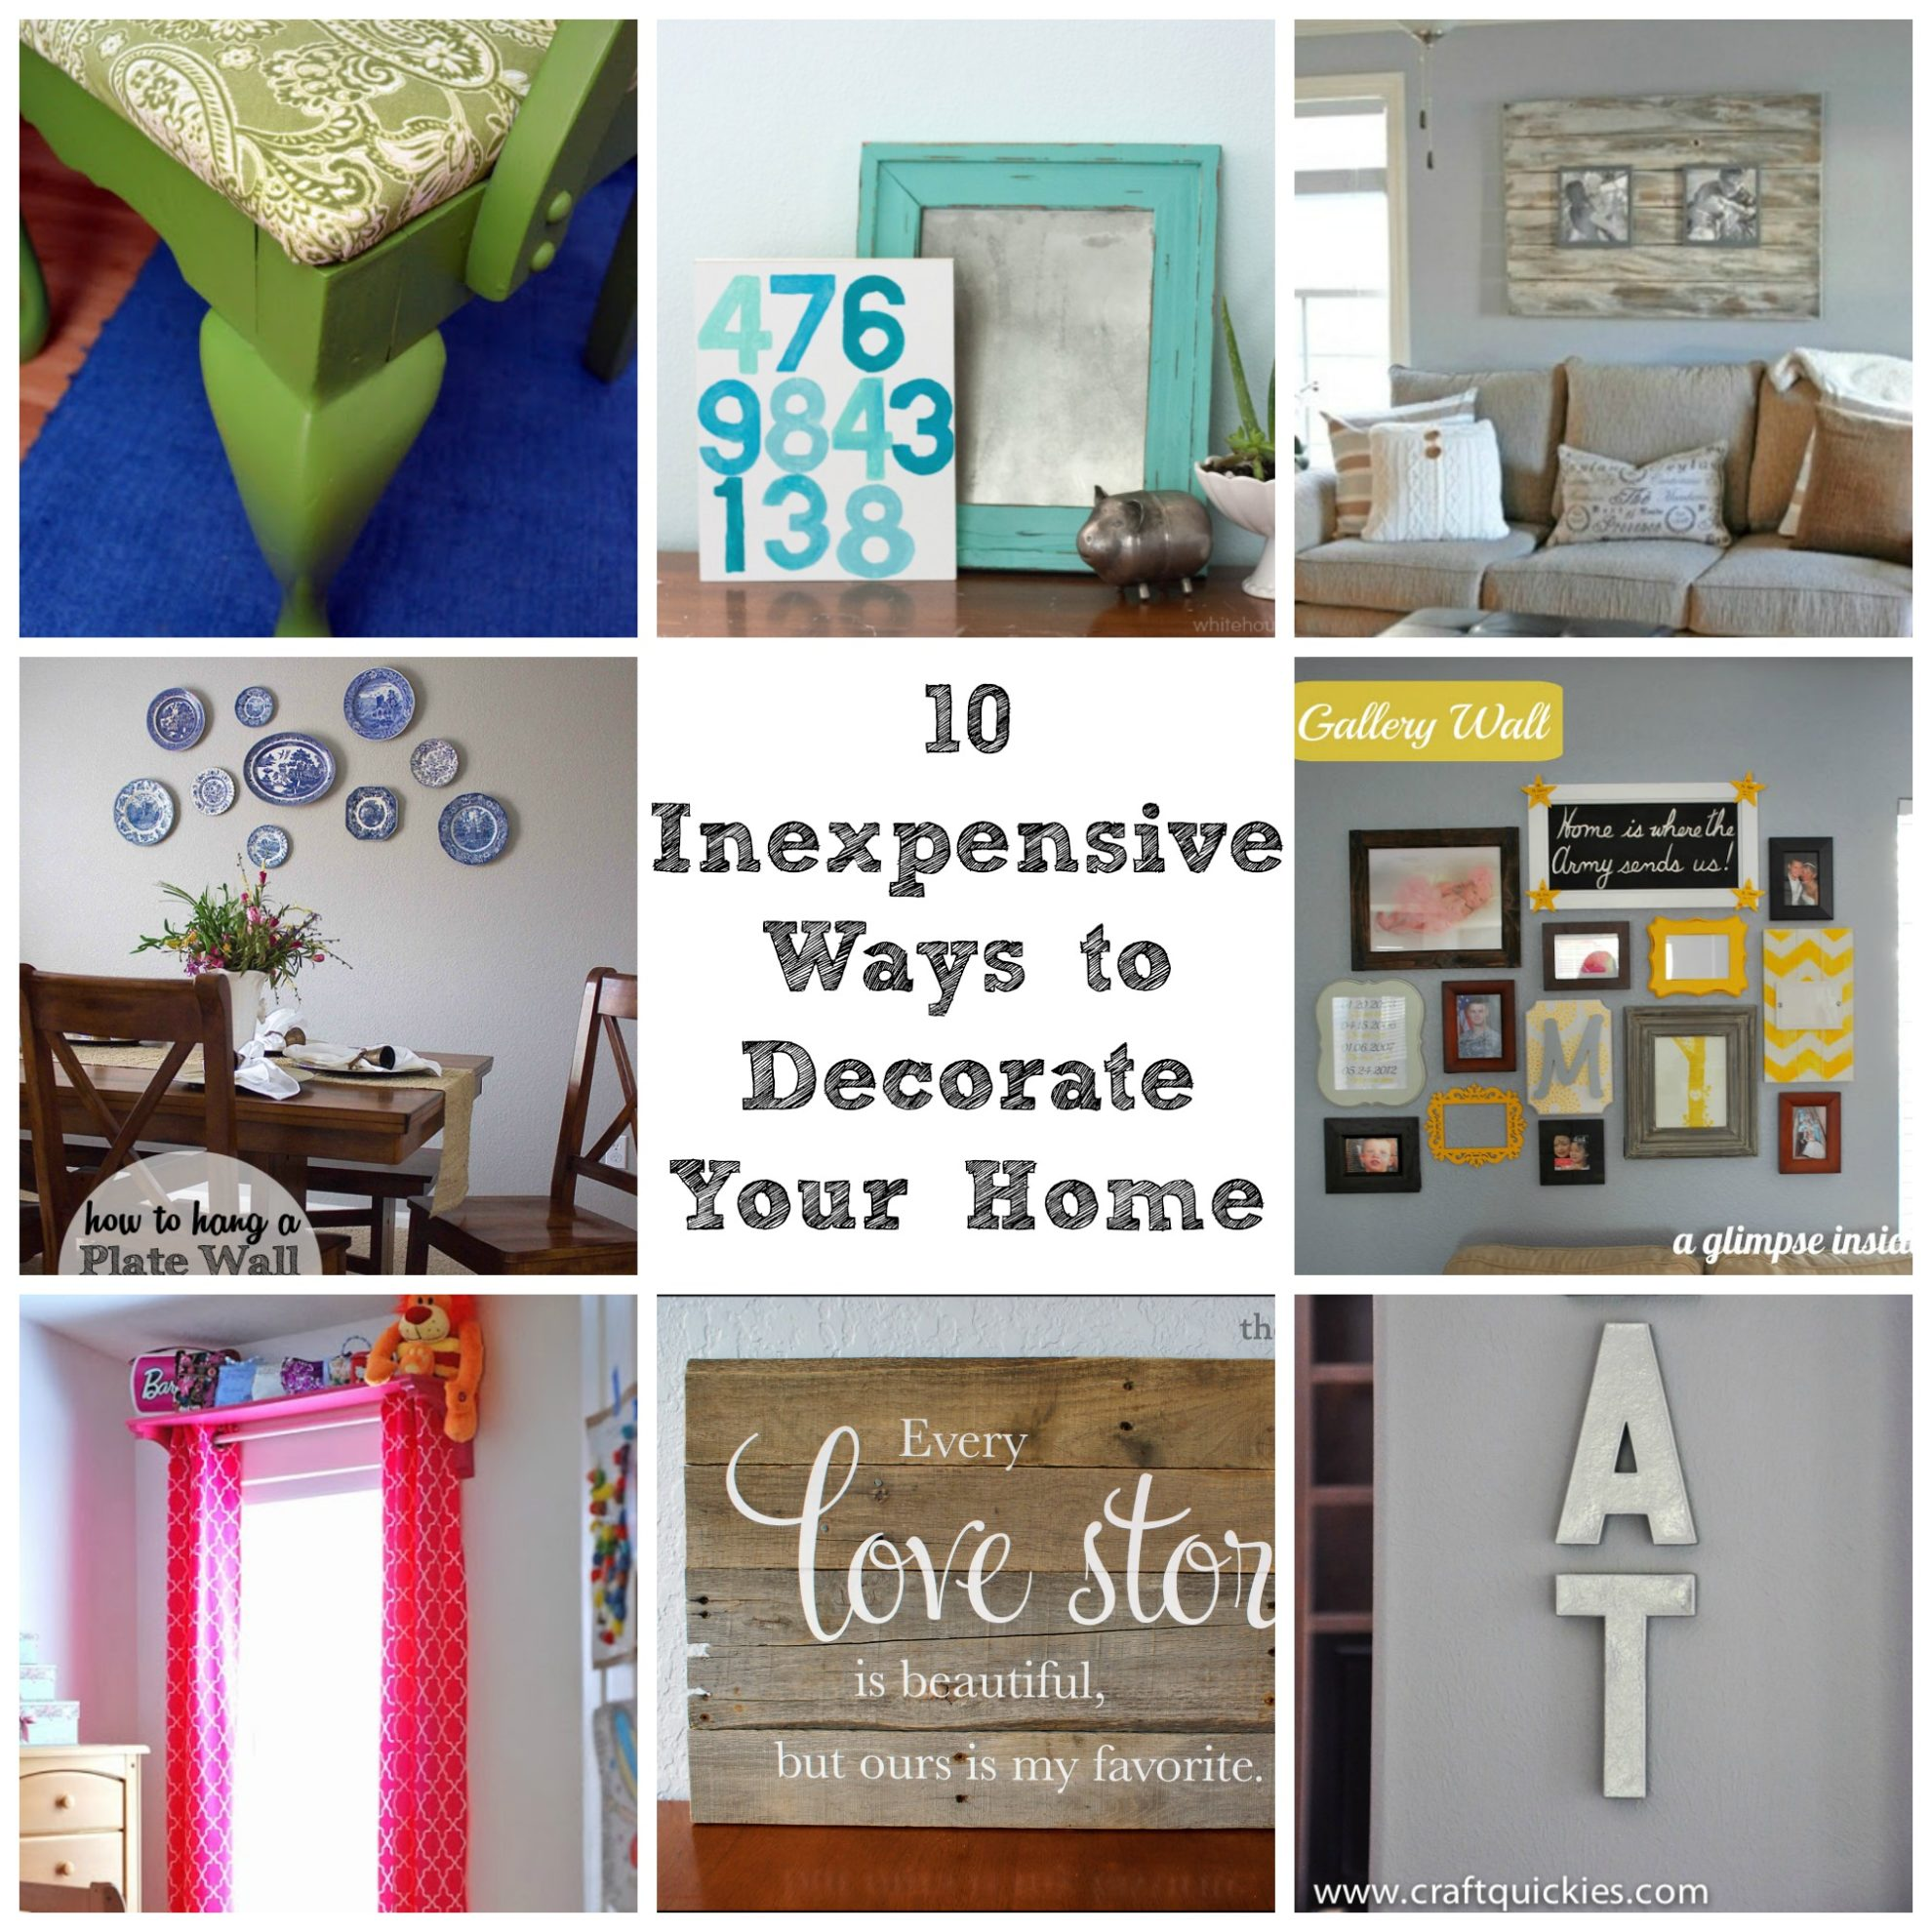 Decorate Your Home For Cheap. 10 Inexpensive Ways to Decorate Your ...